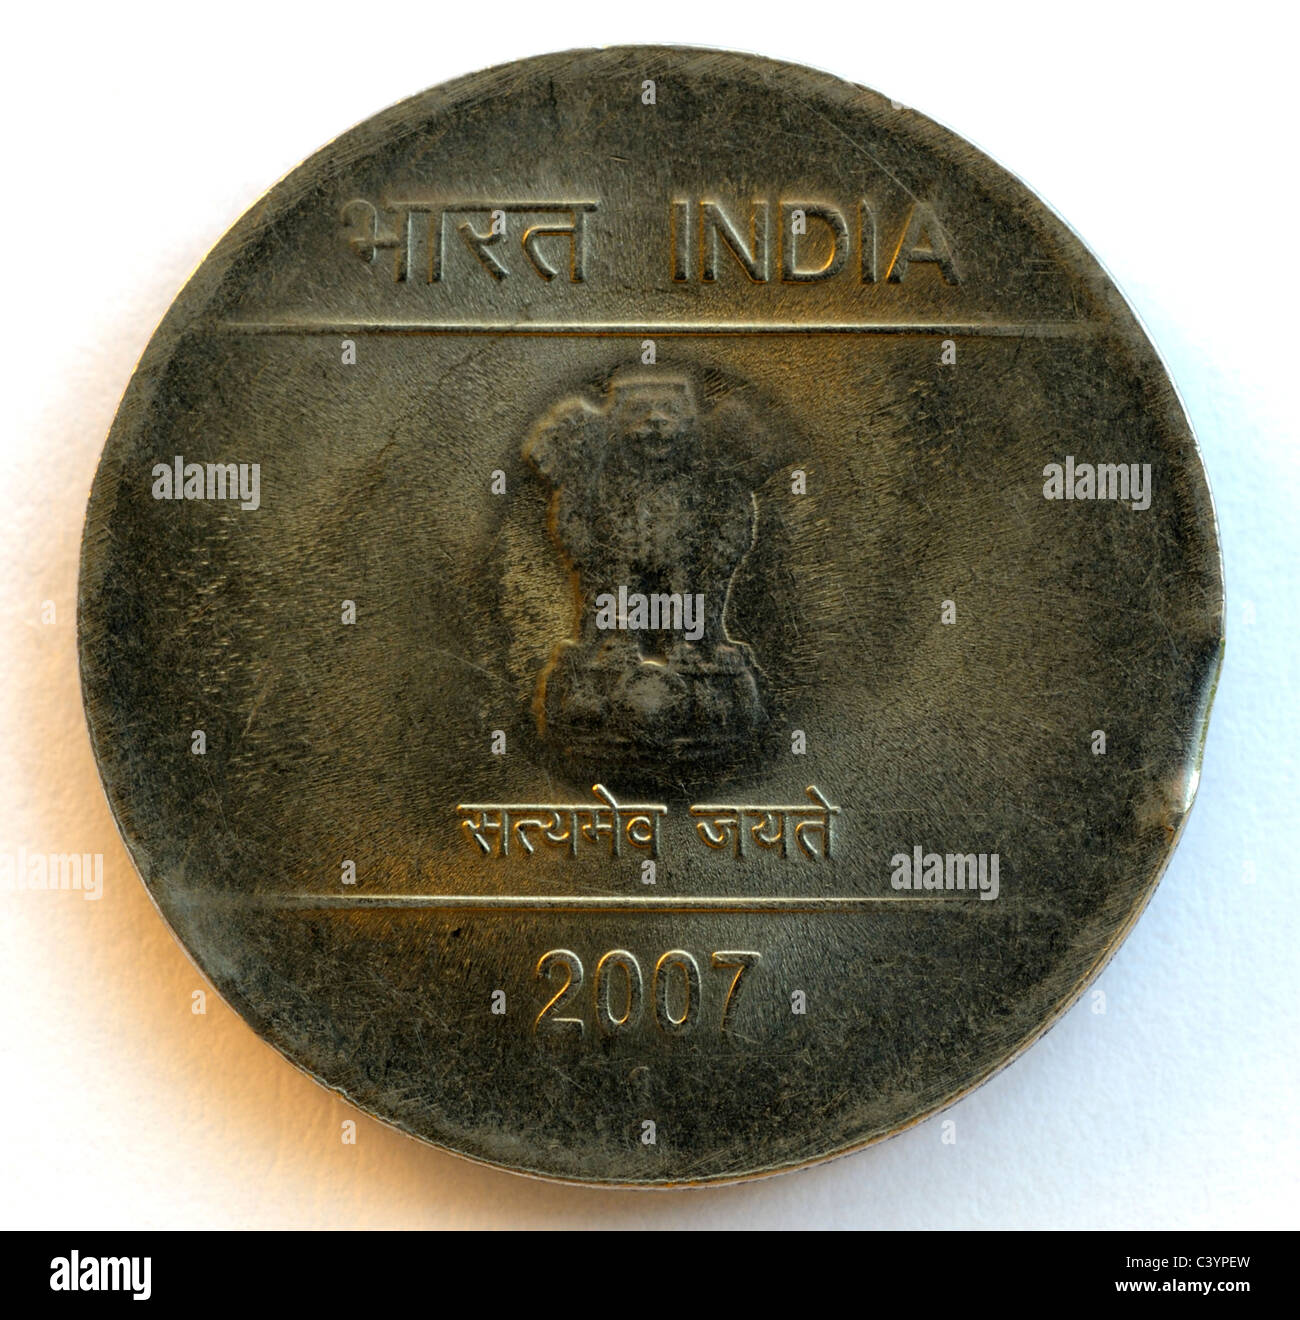 India 1 One Rupee Coin. - Stock Image